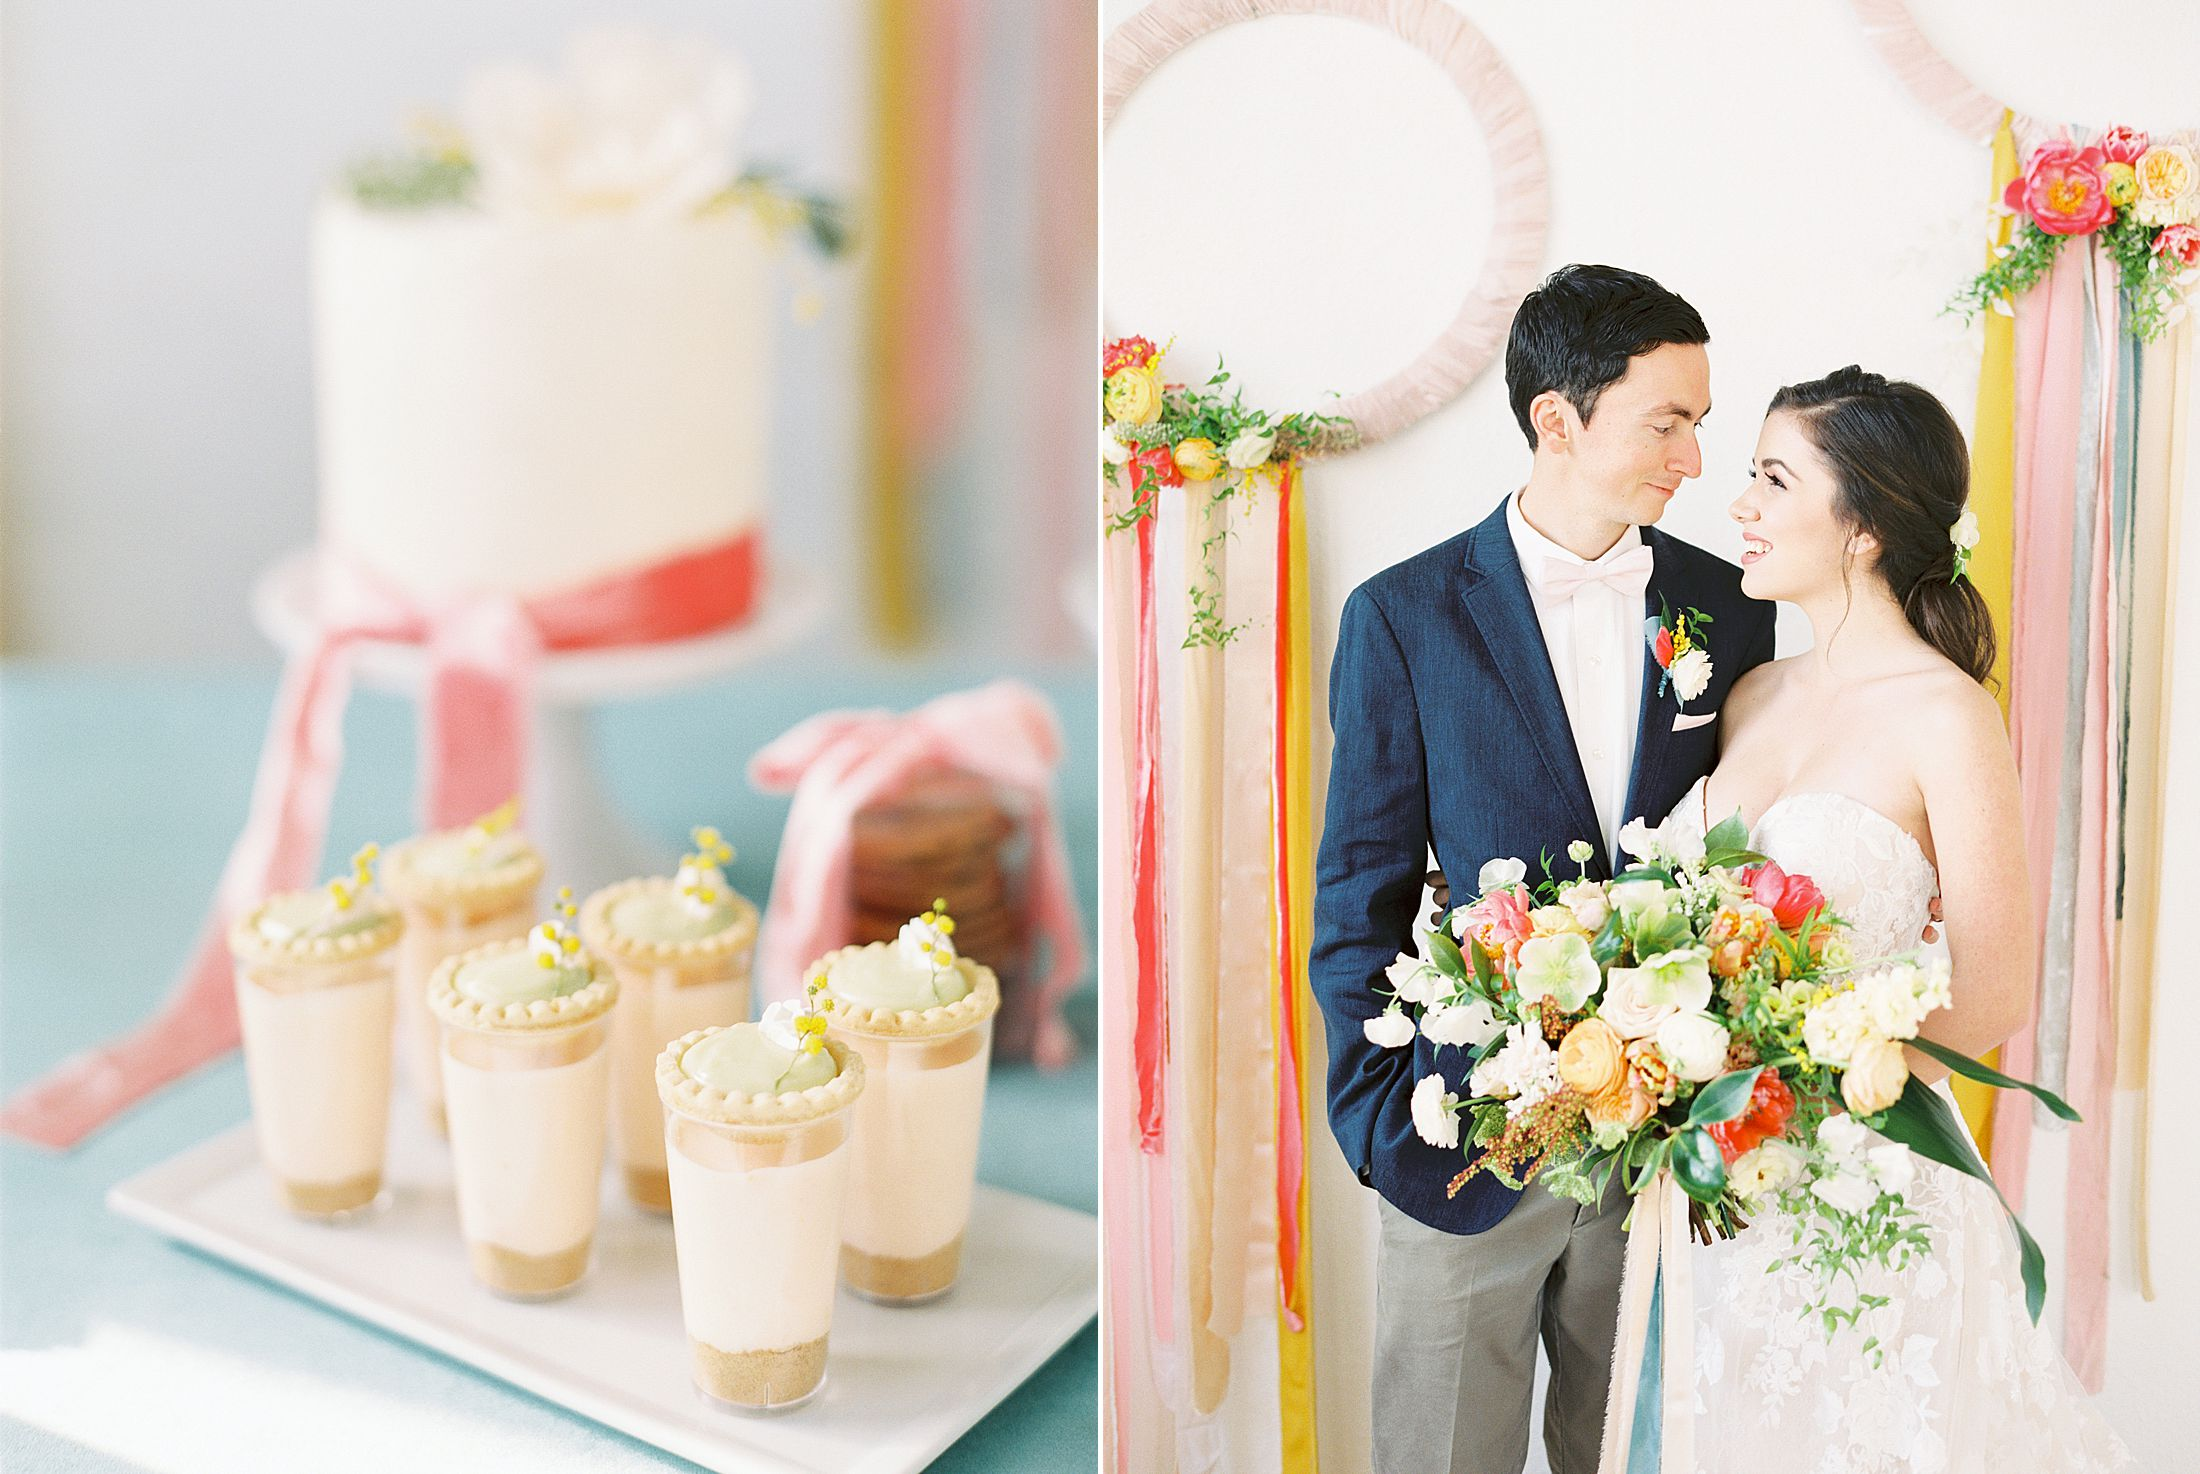 Bay Area Spring Wedding Inspiration - Ashley Baumgartner - Inspired By This - Party Crush Studio and Lens of Lenox Videography - Bay Area Wedding Photography_0055.jpg